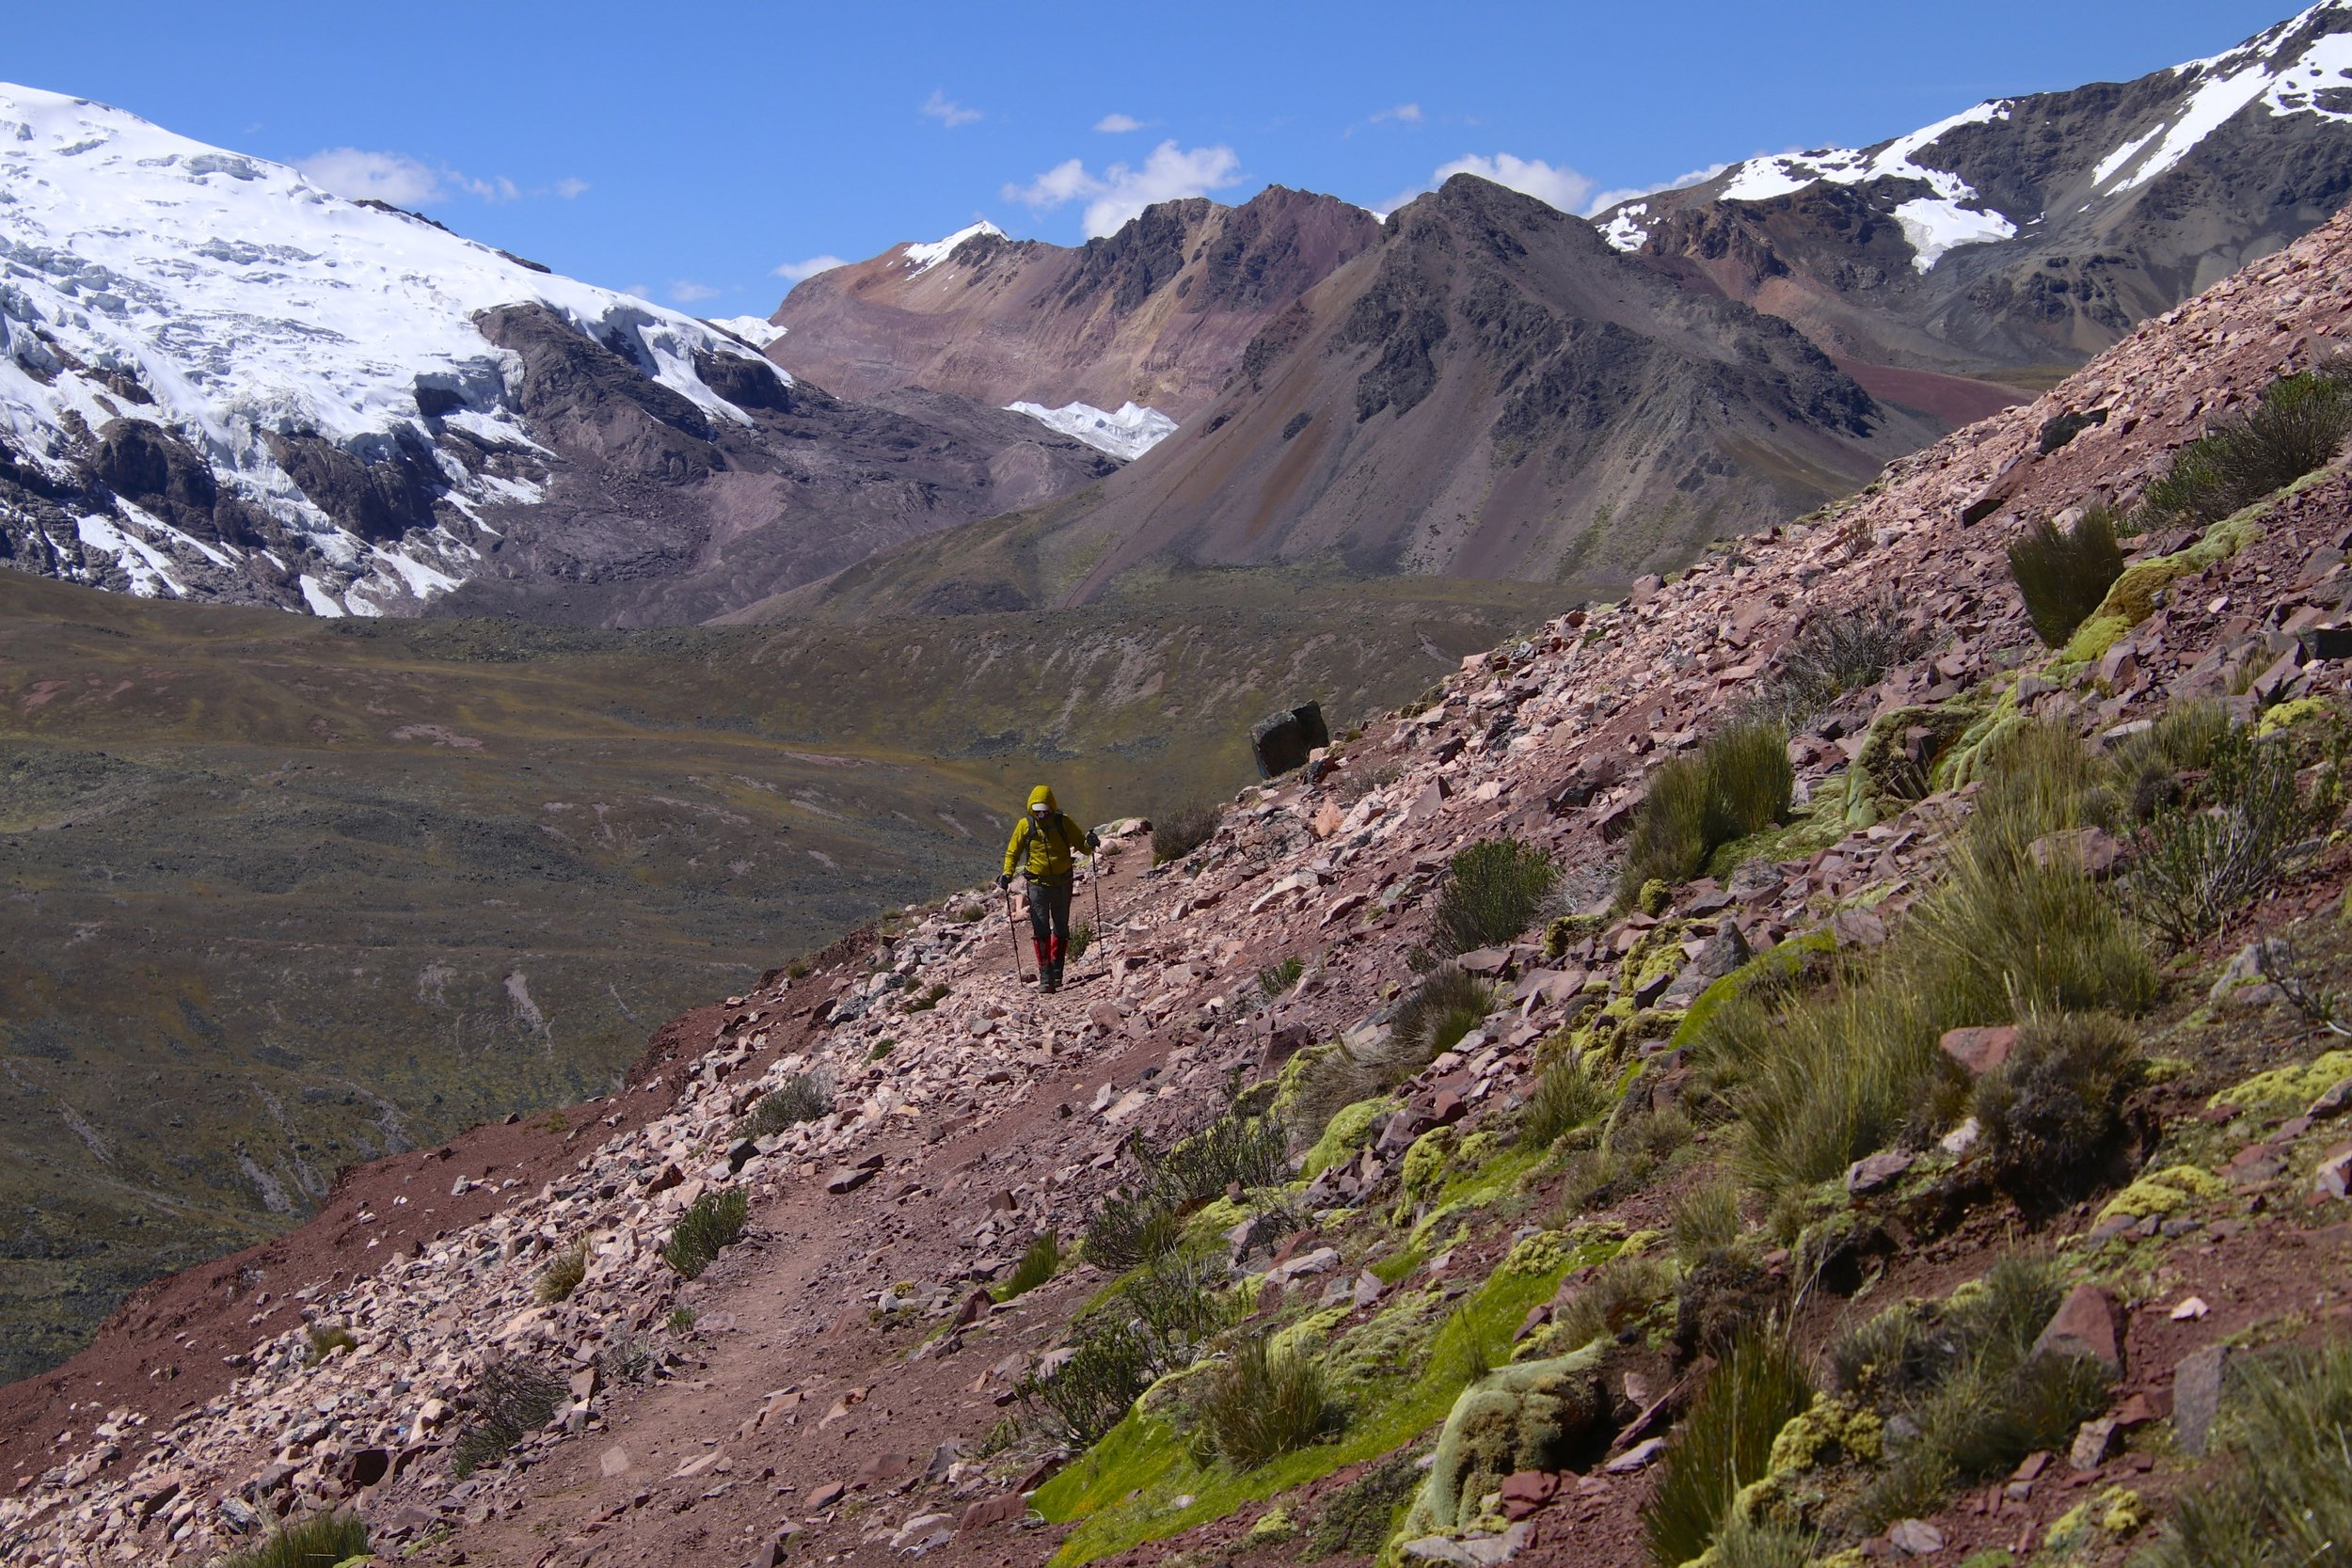 Approaching Jampa Pass at 5,000m and the scenery changed yet again. Every day on this trek we had different scenery!